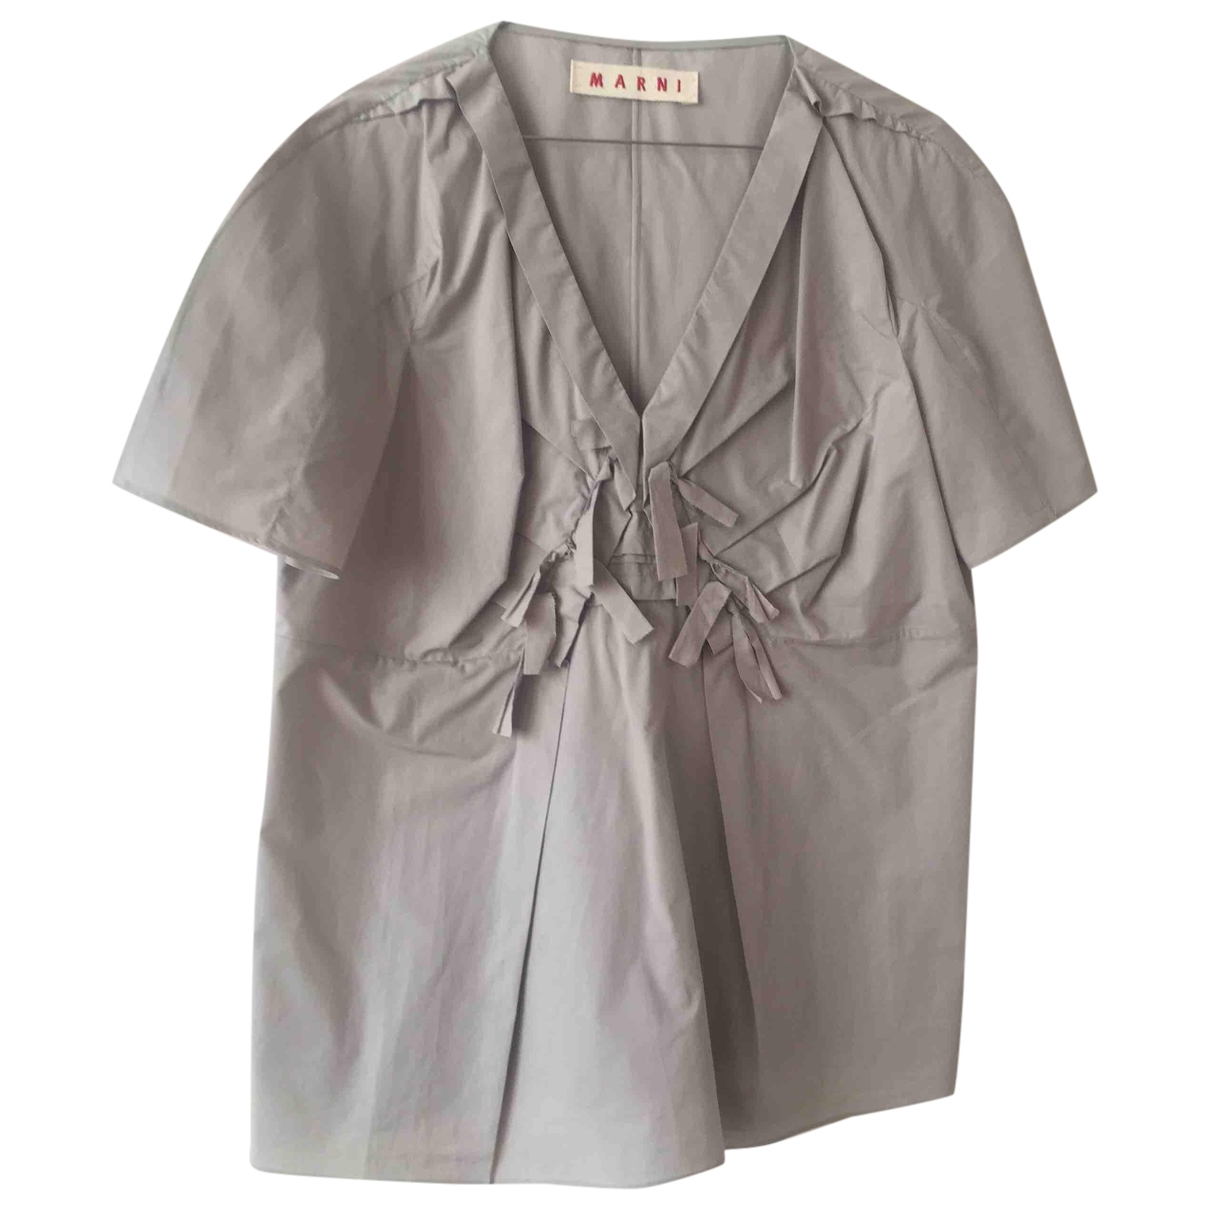 Marni \N Grey Cotton  top for Women 44 IT